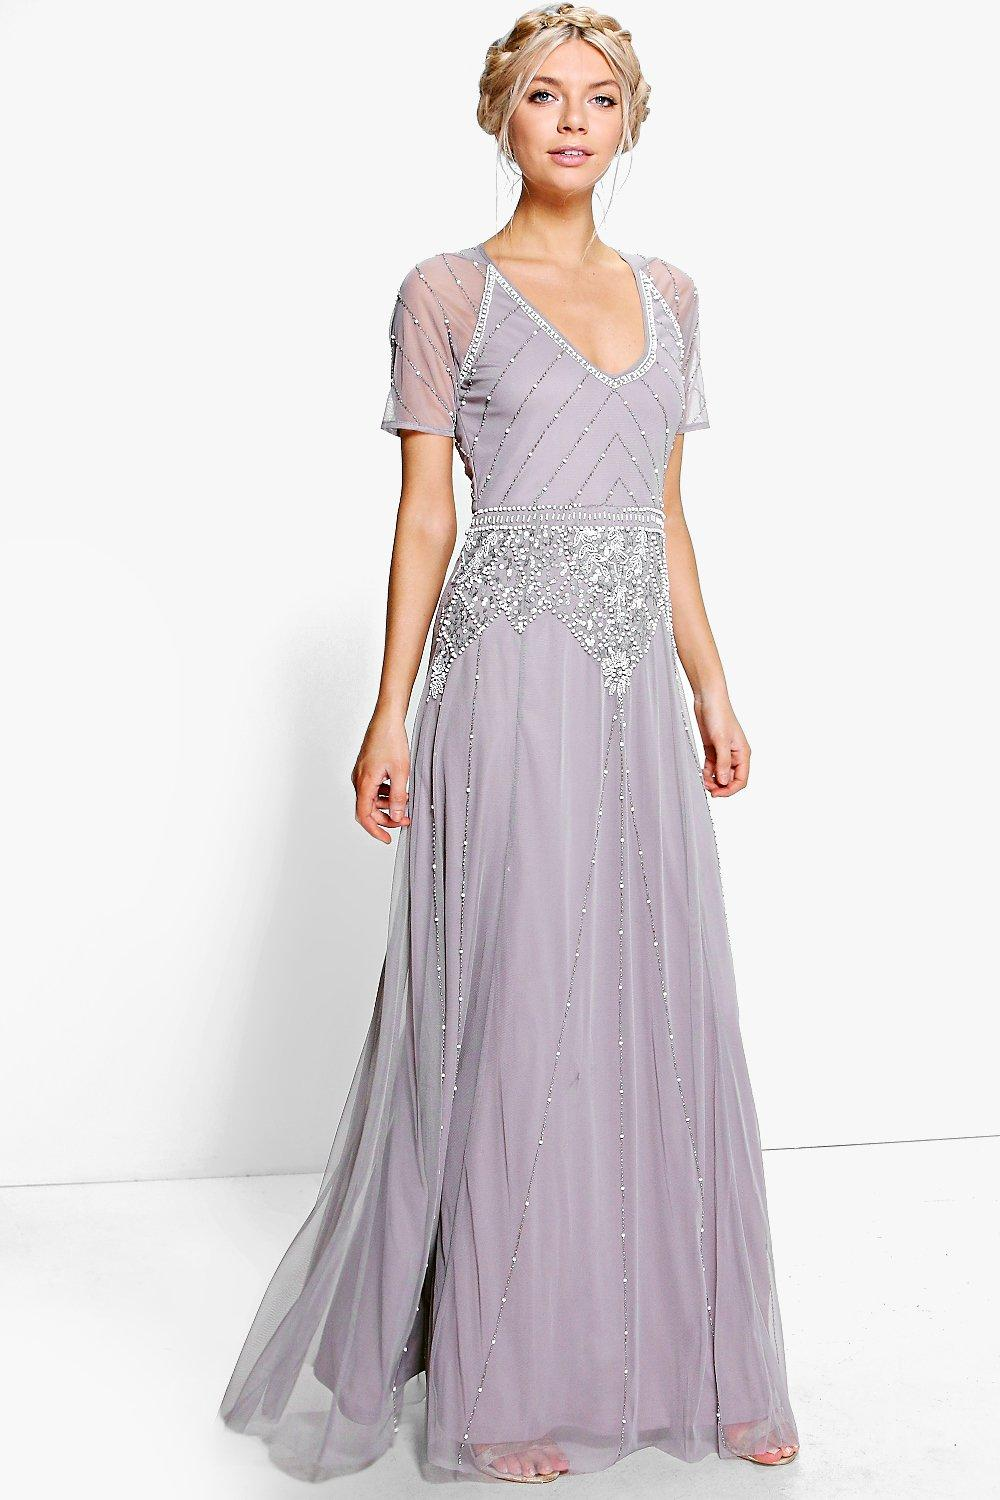 1920s Evening Gowns by Year Boutique Beaded Cap Sleeve Maxi Dress $100.00 AT vintagedancer.com